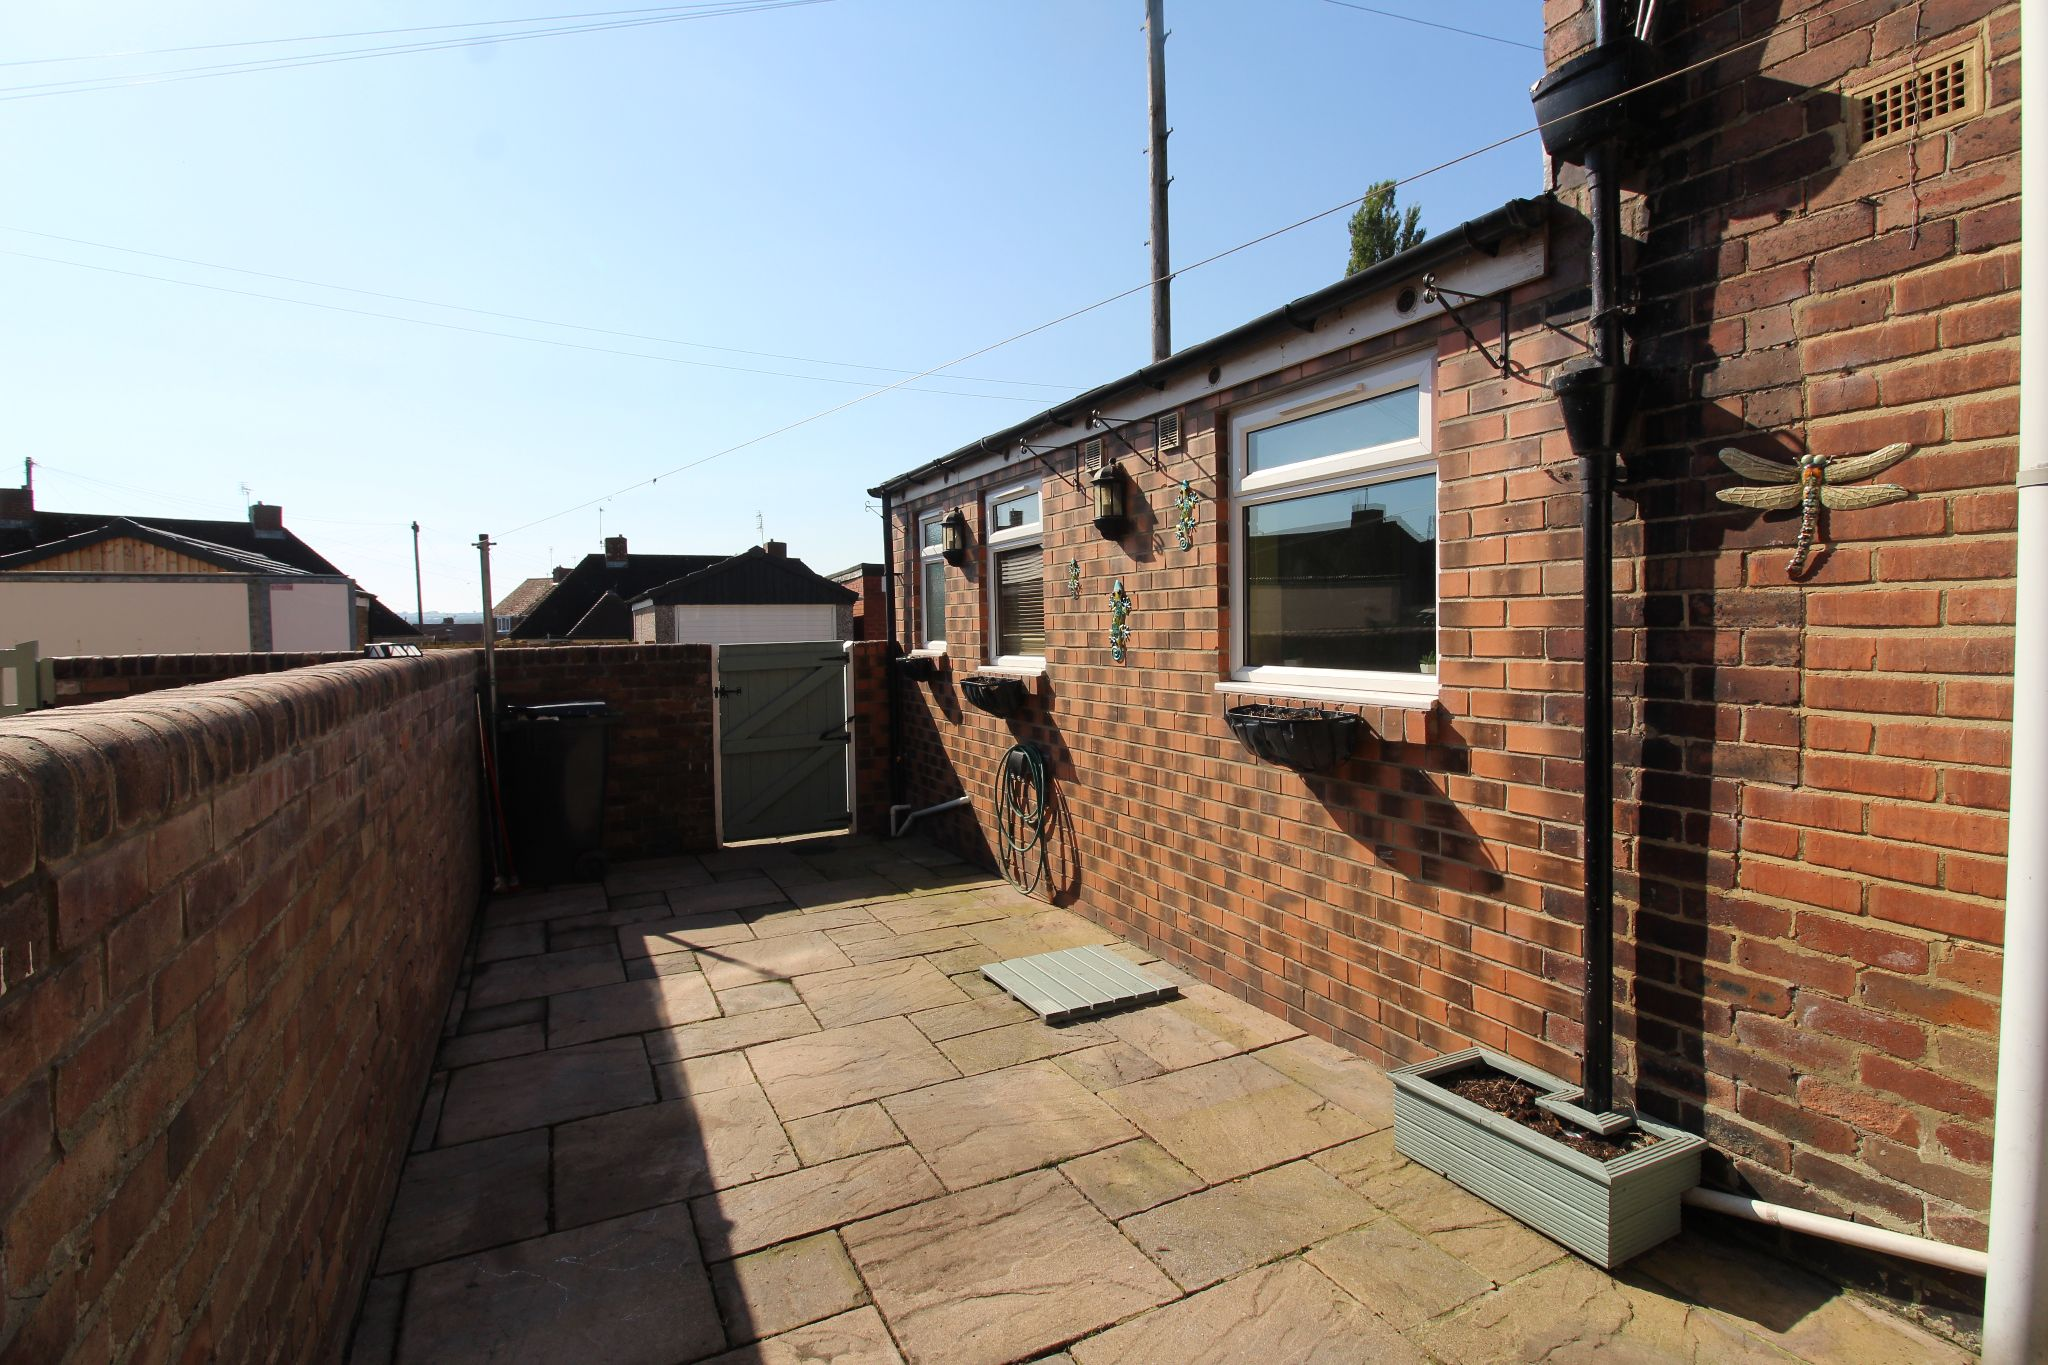 4 bedroom mid terraced house Sale Agreed in Willington - Photograph 10.